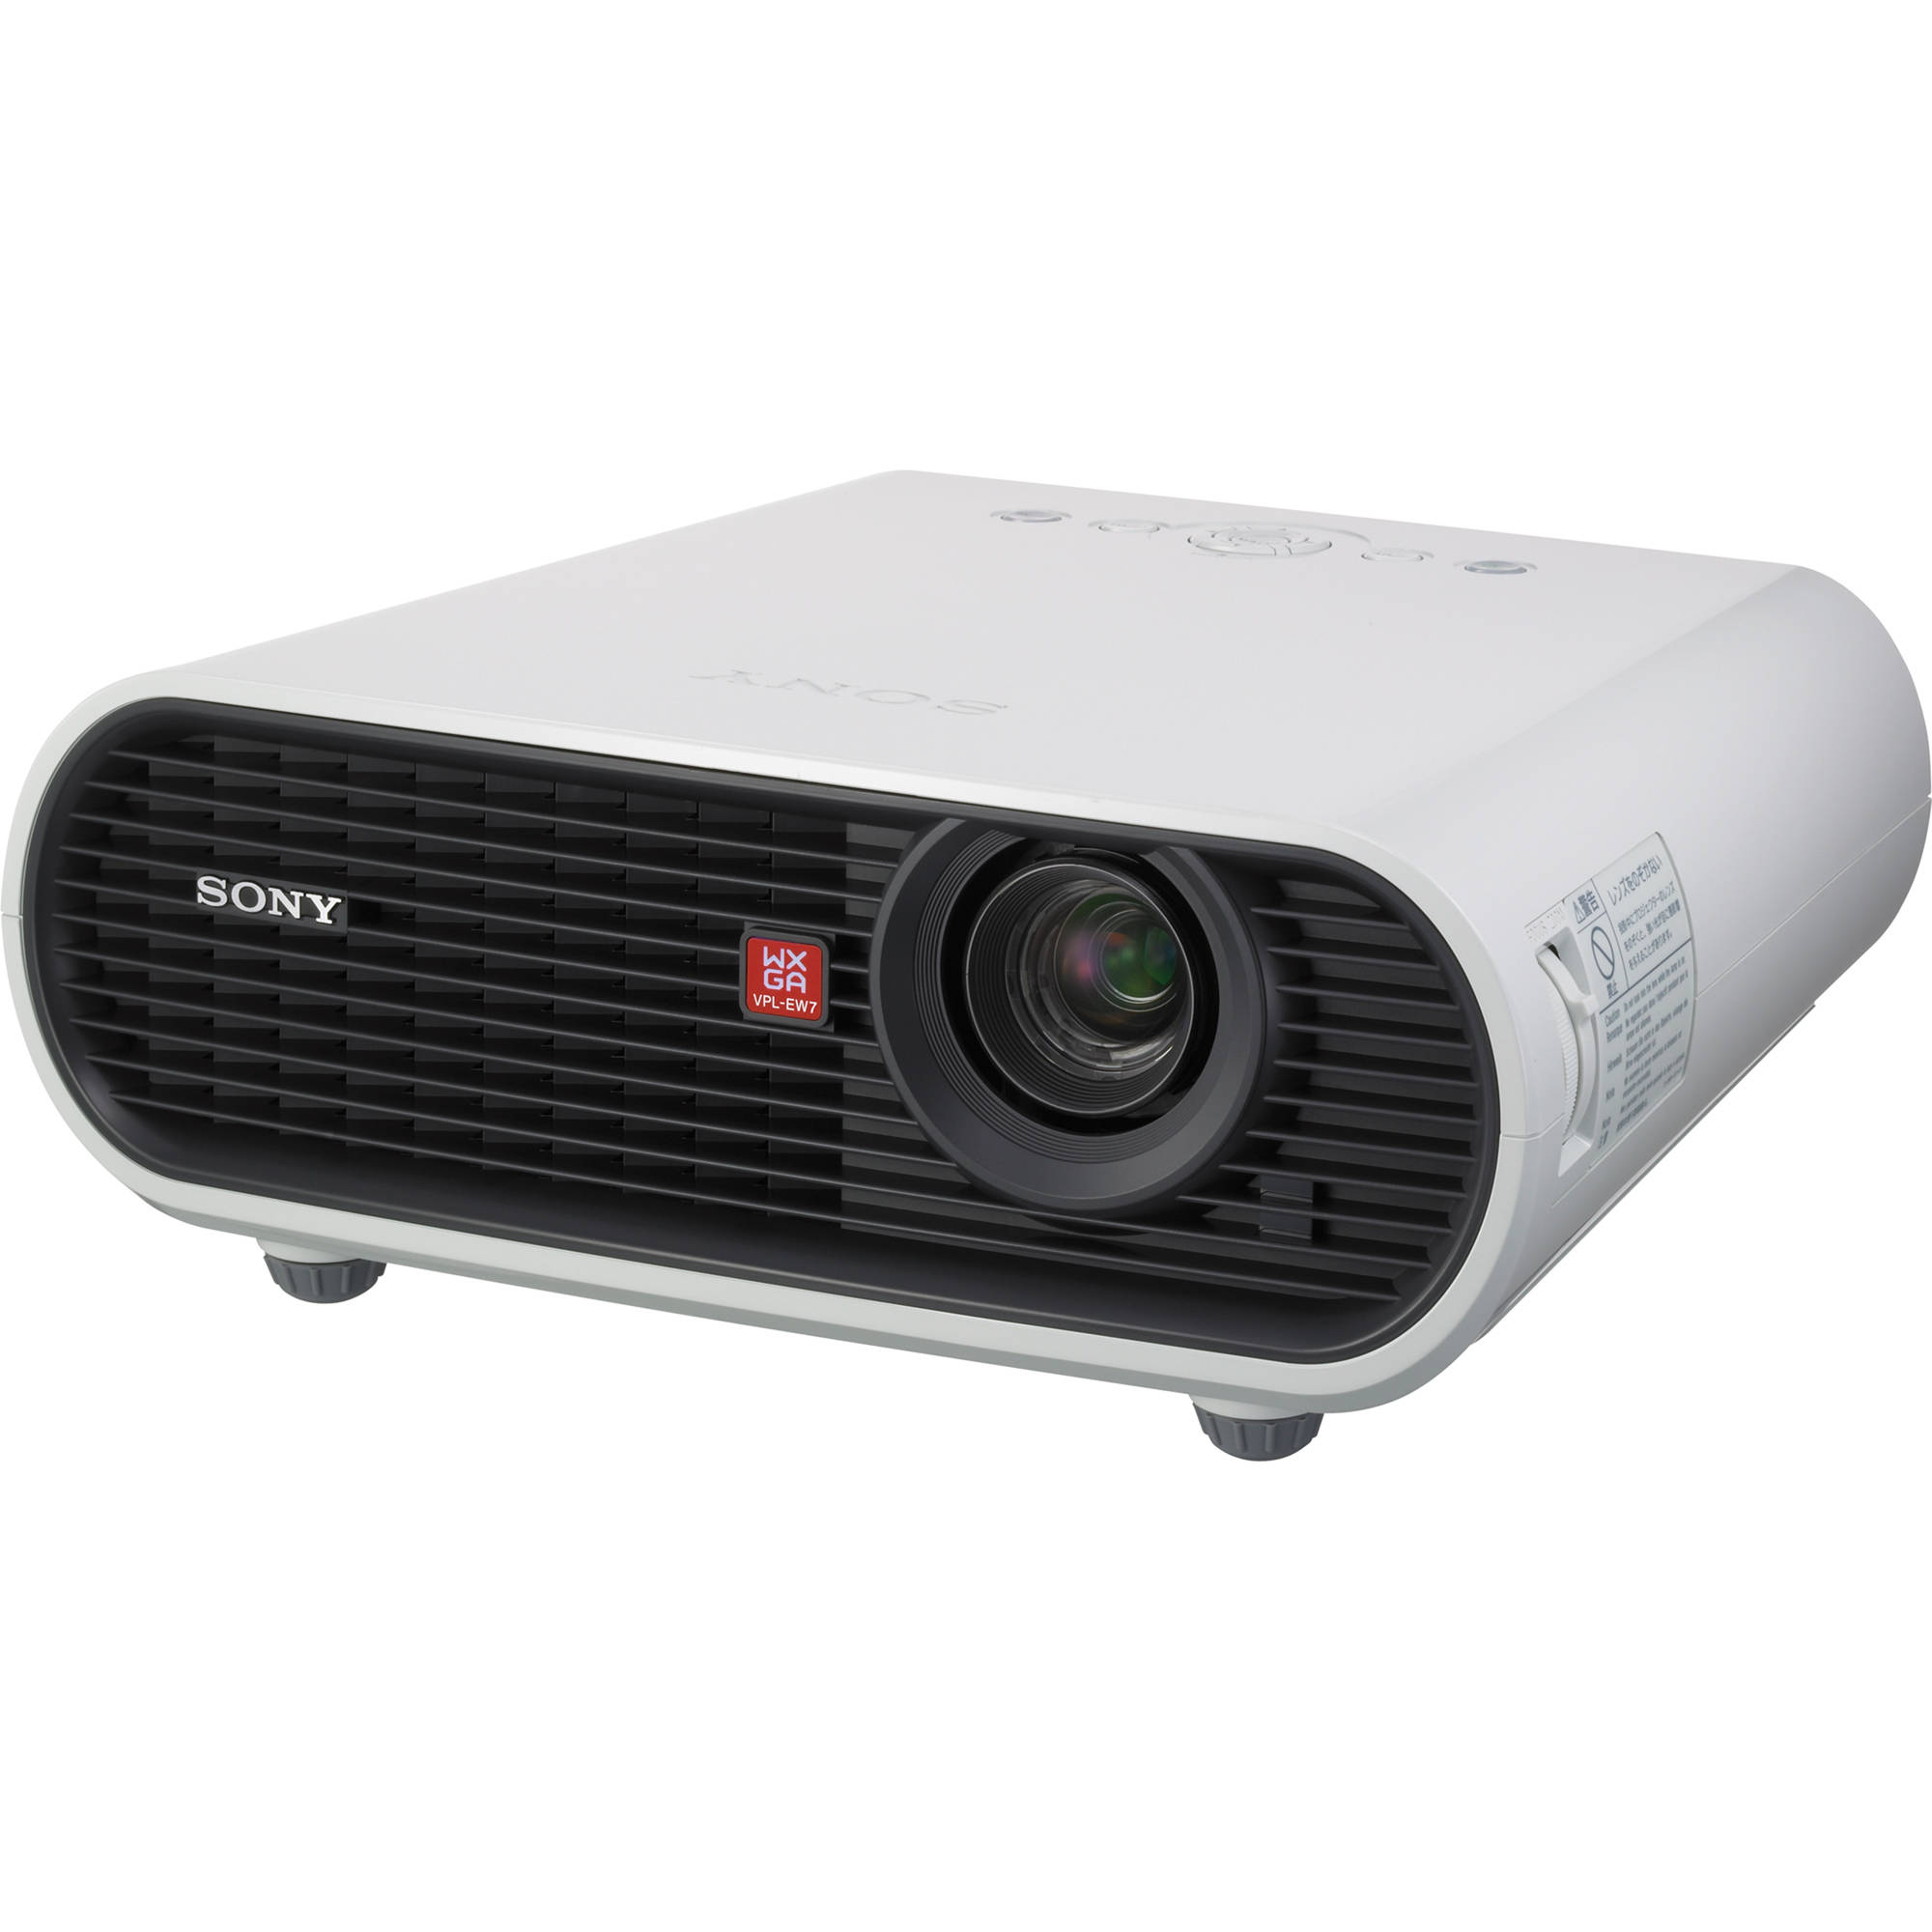 Sony vpl ew 3lcd portable projector vplew7 b h photo video for Portable video projector